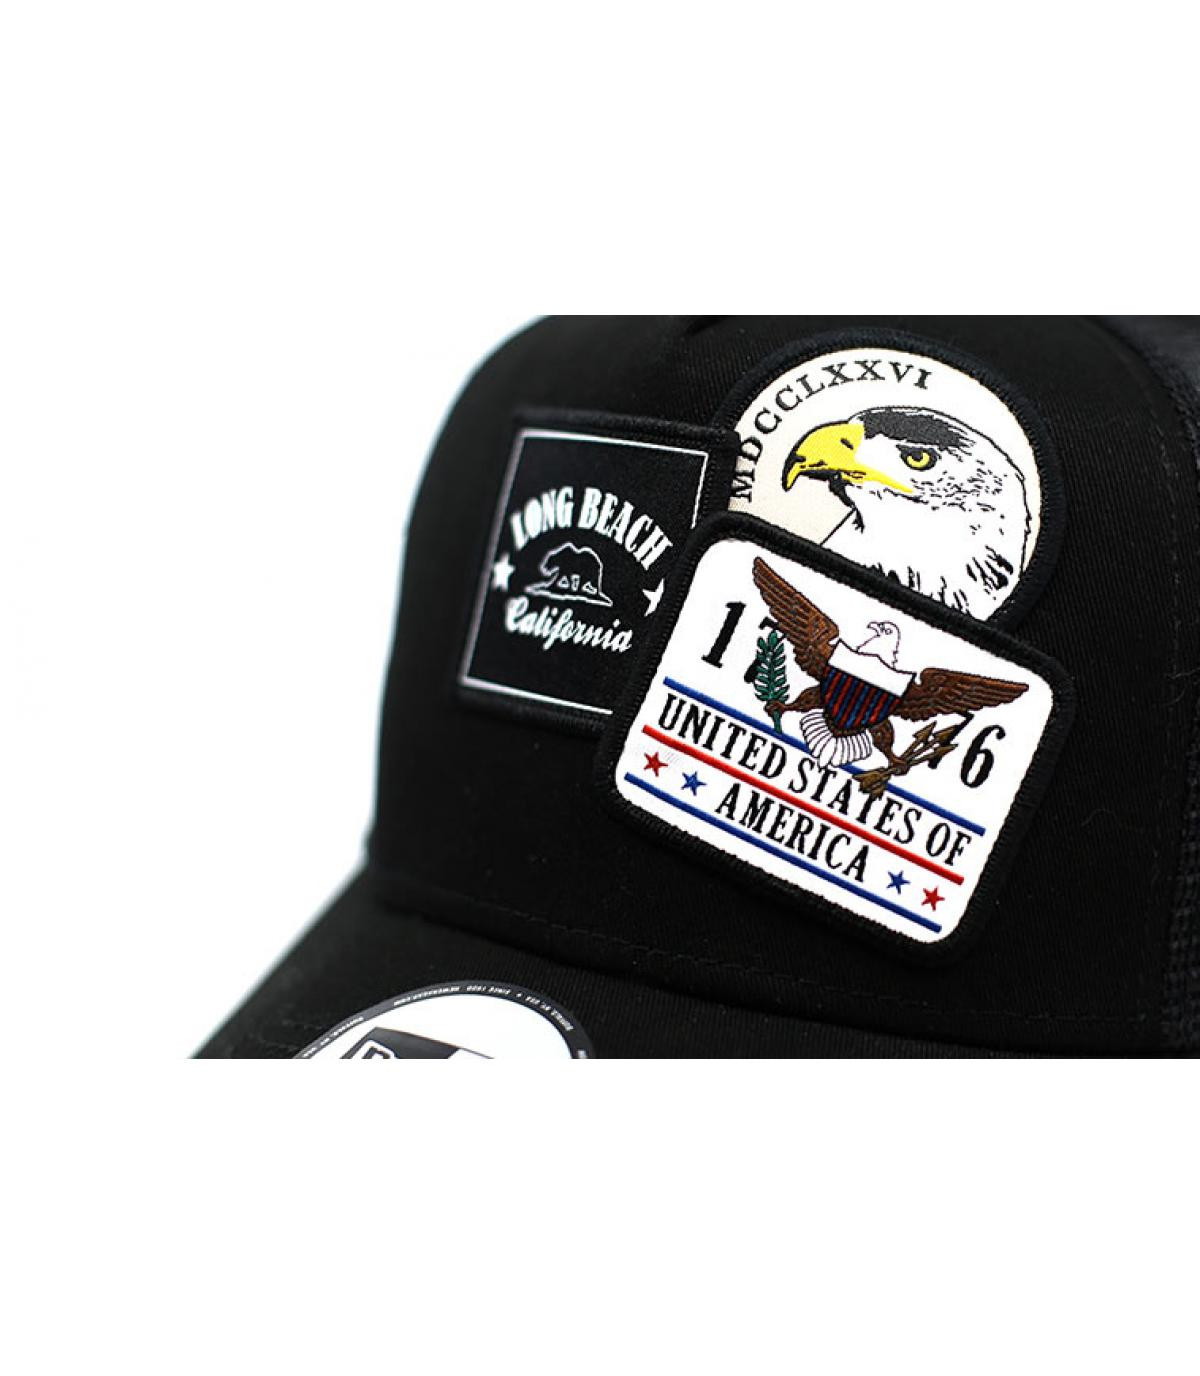 Details Trucker Overlapping patch black - afbeeling 3